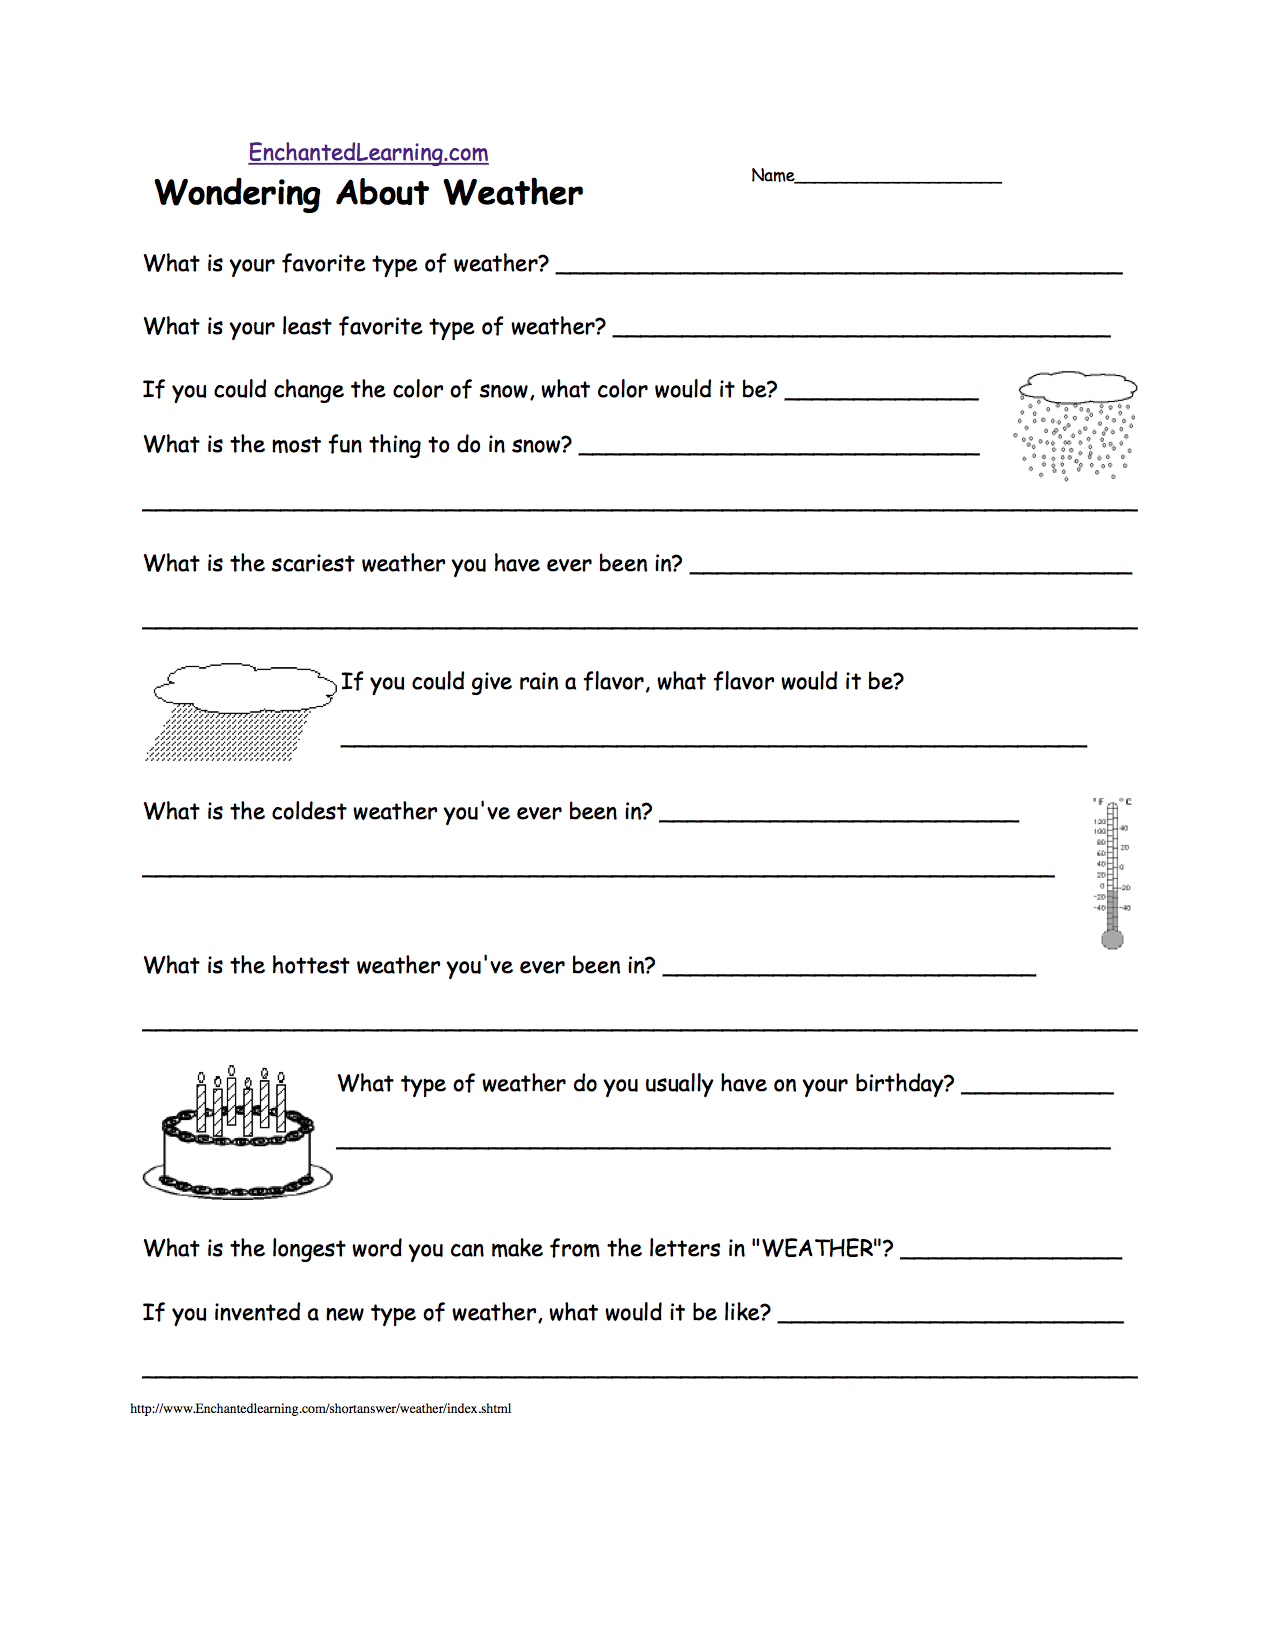 worksheet Weather Fronts Worksheet weather related activities at enchantedlearning com weather